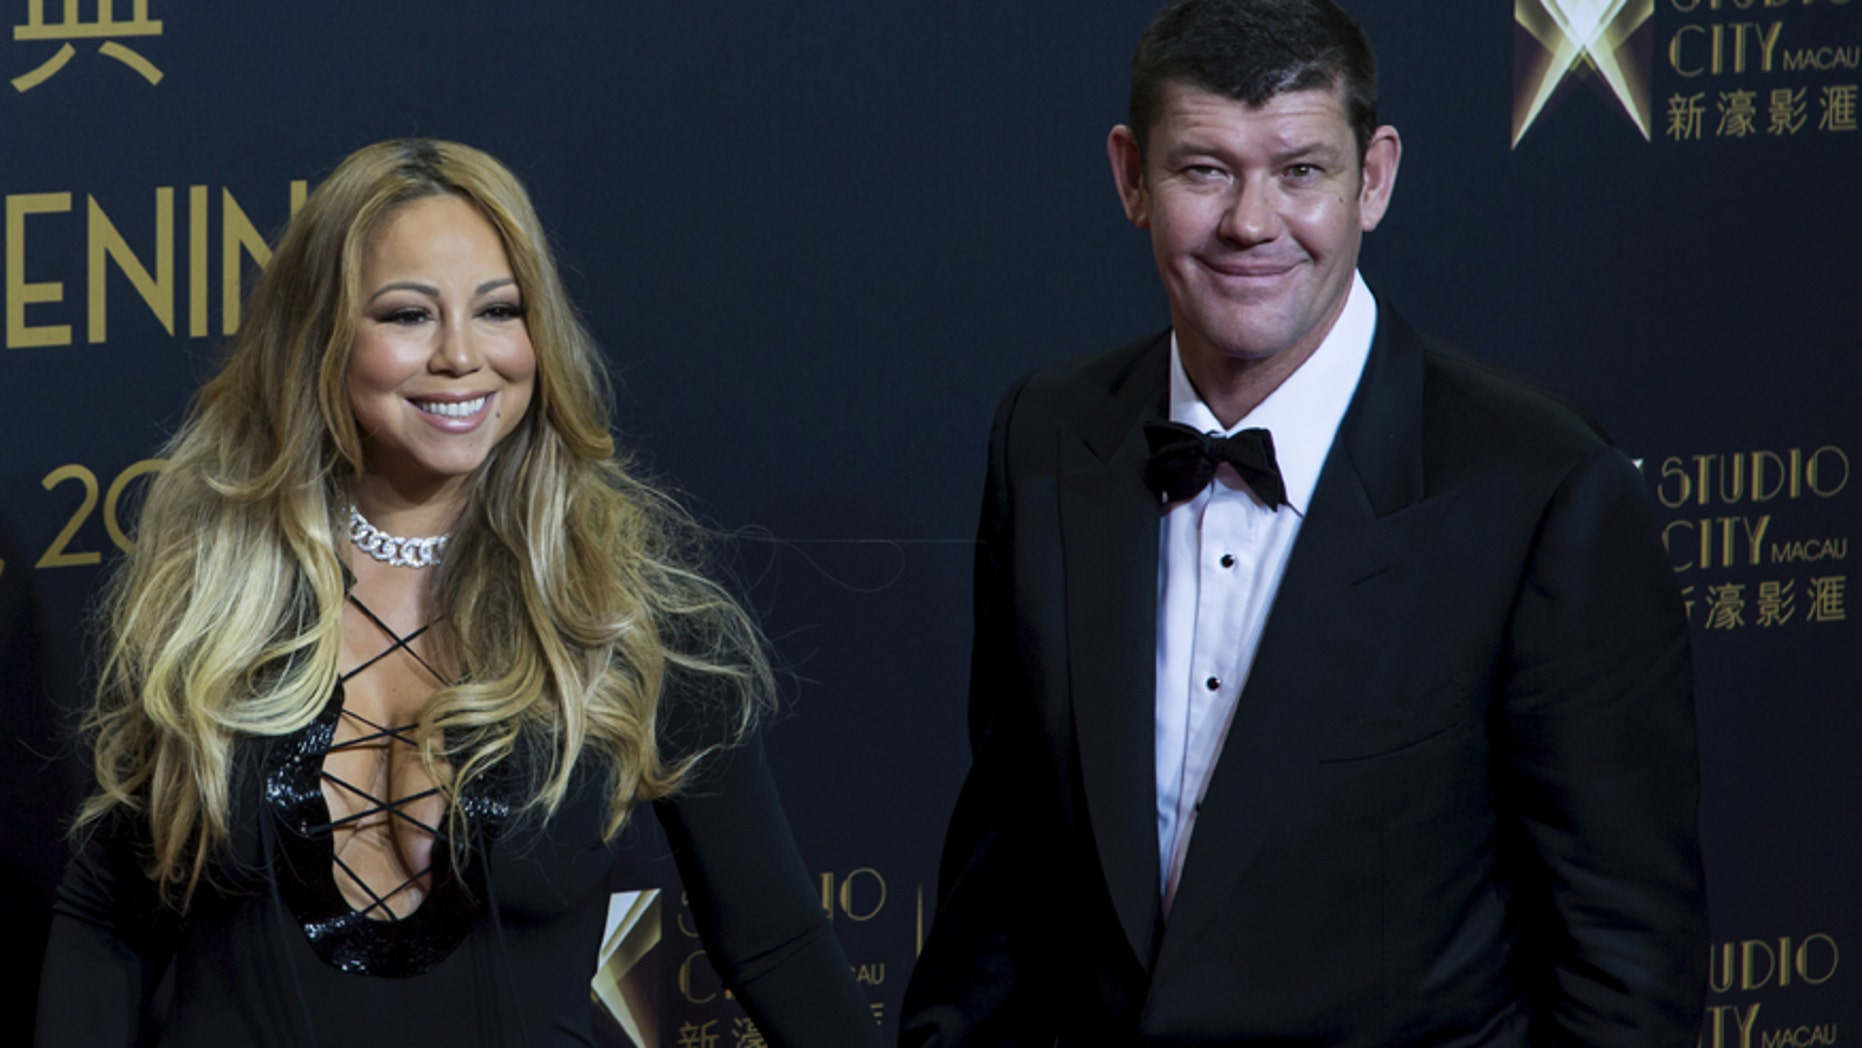 """Singer Mariah Carey (L) and Australian billionaire James Packer, co-chairman of Melco Crown Entertainment, pose on the red carpet before the opening ceremony of Studio City and the premiere of the short film """"The Audition"""" in Macau, China, October 27, 2015."""